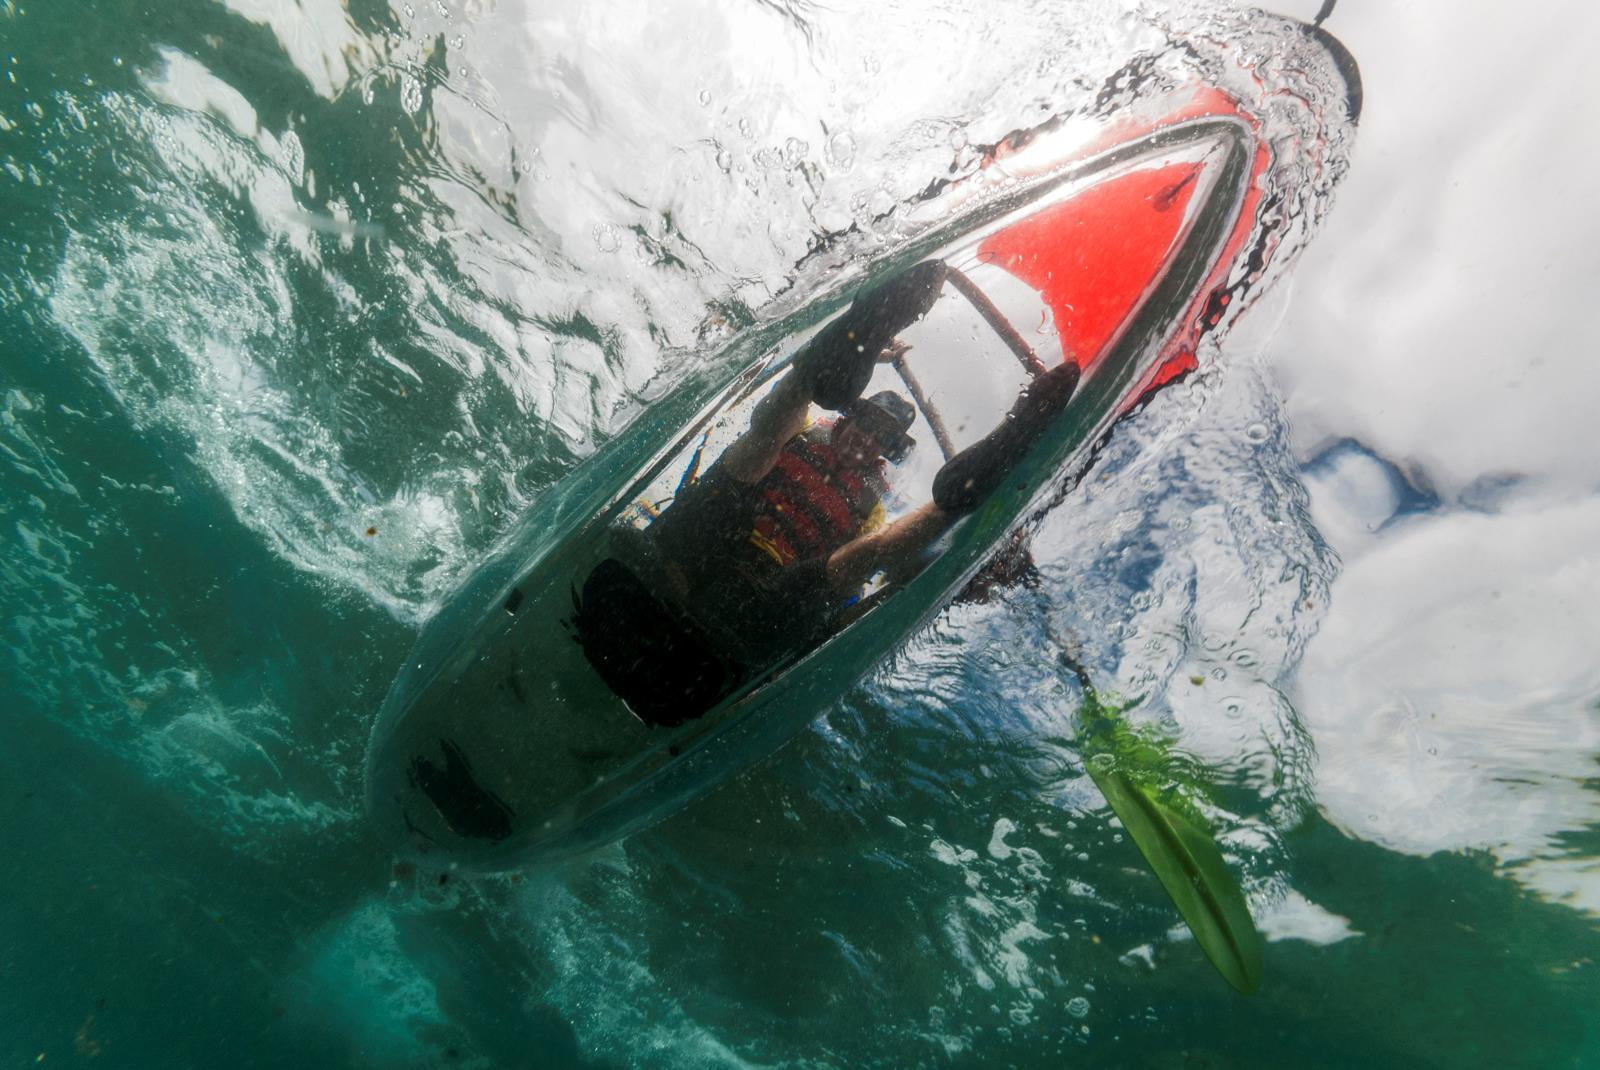 Tour Clear Kayak in Las Canteras with Snack